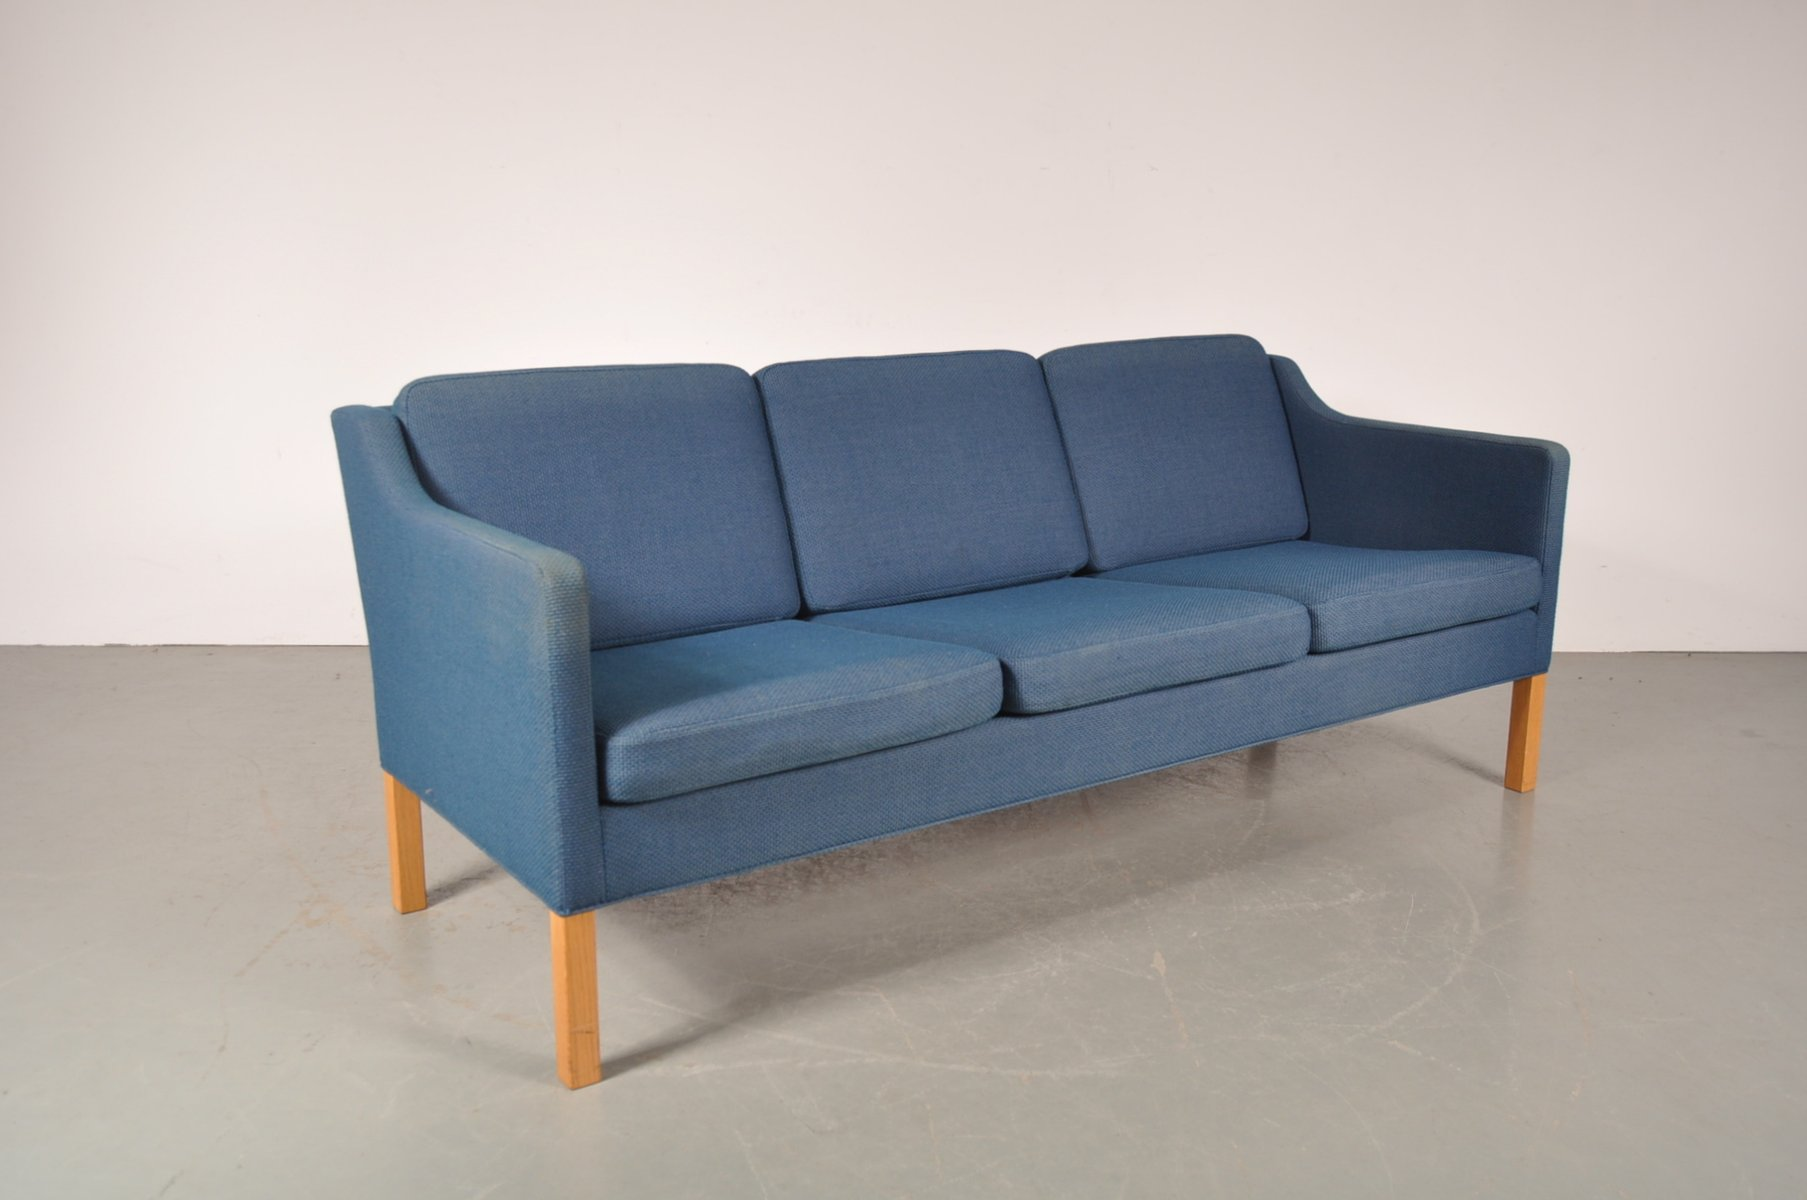 Danish Three Seater Sofa with Blue Fabric by B¸rge Mogensen for